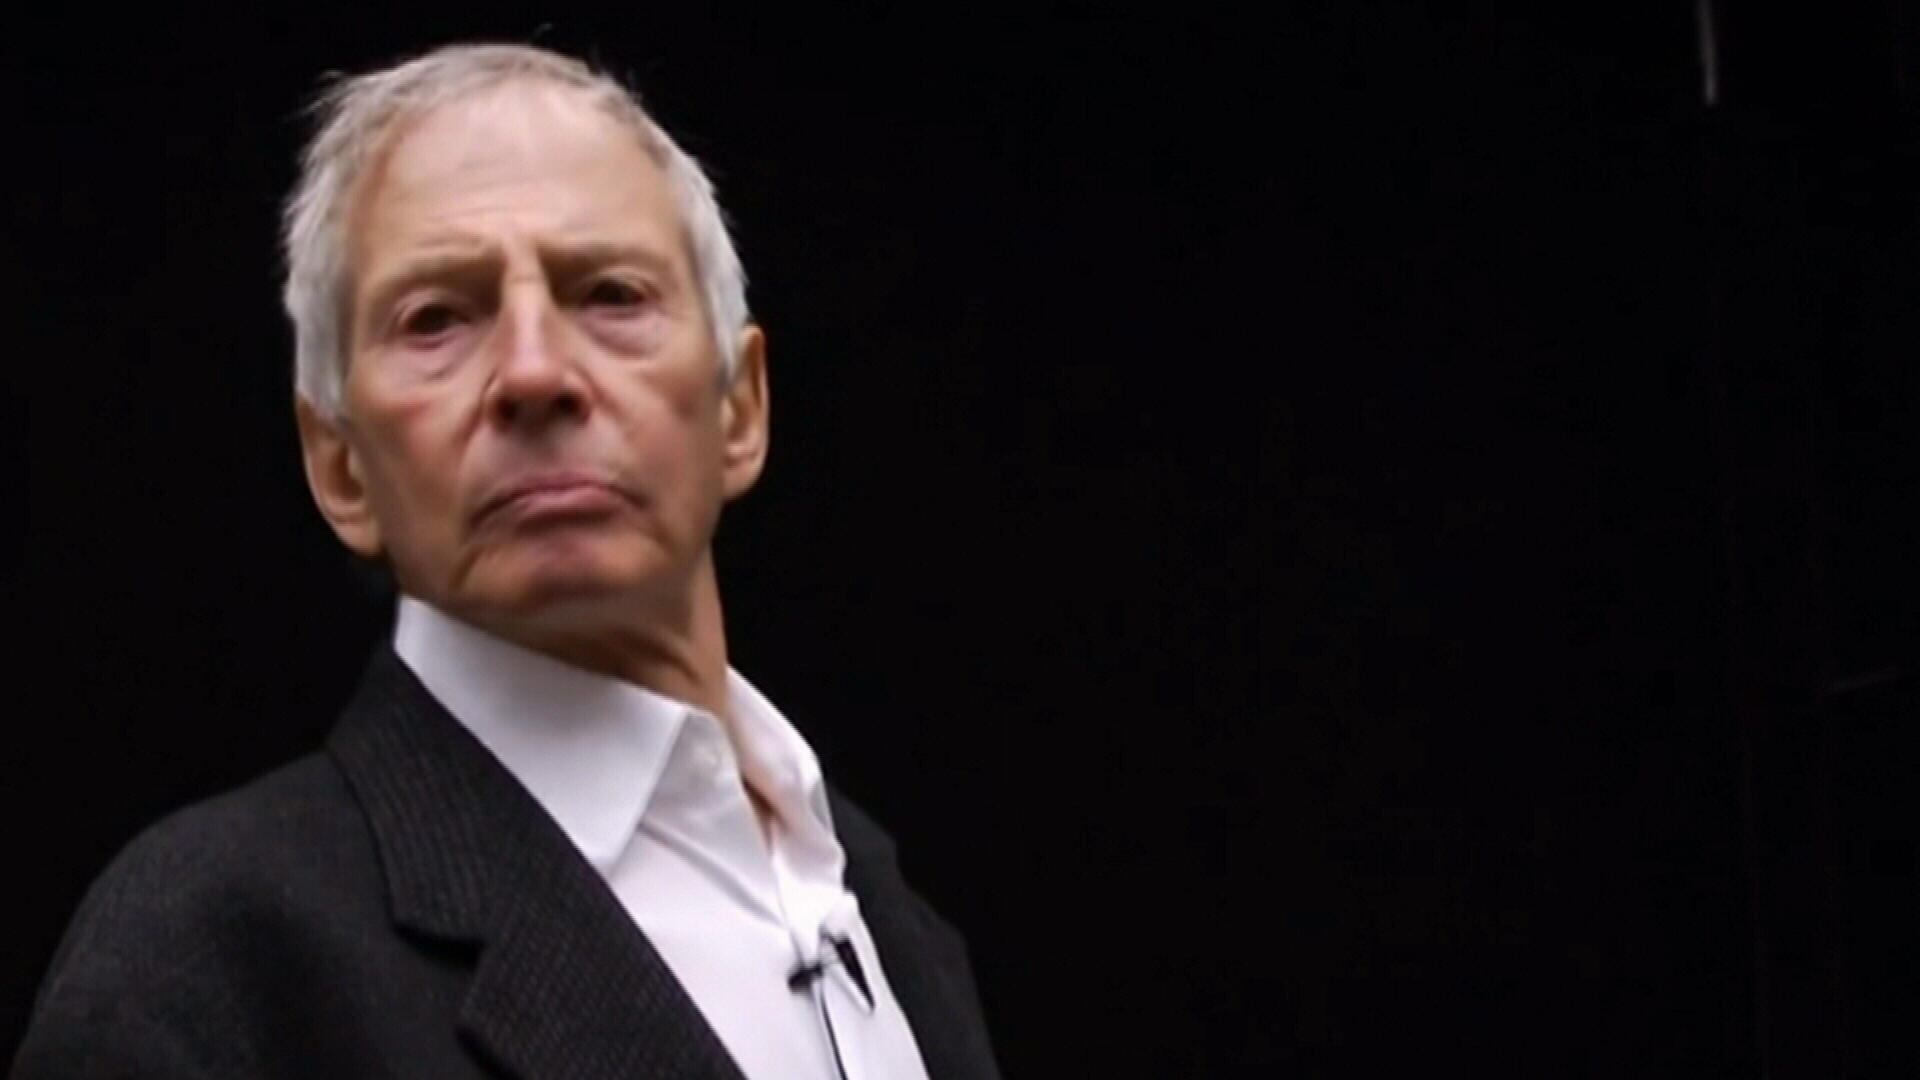 Robert Durst set to stand trial over killing of woman in 2018